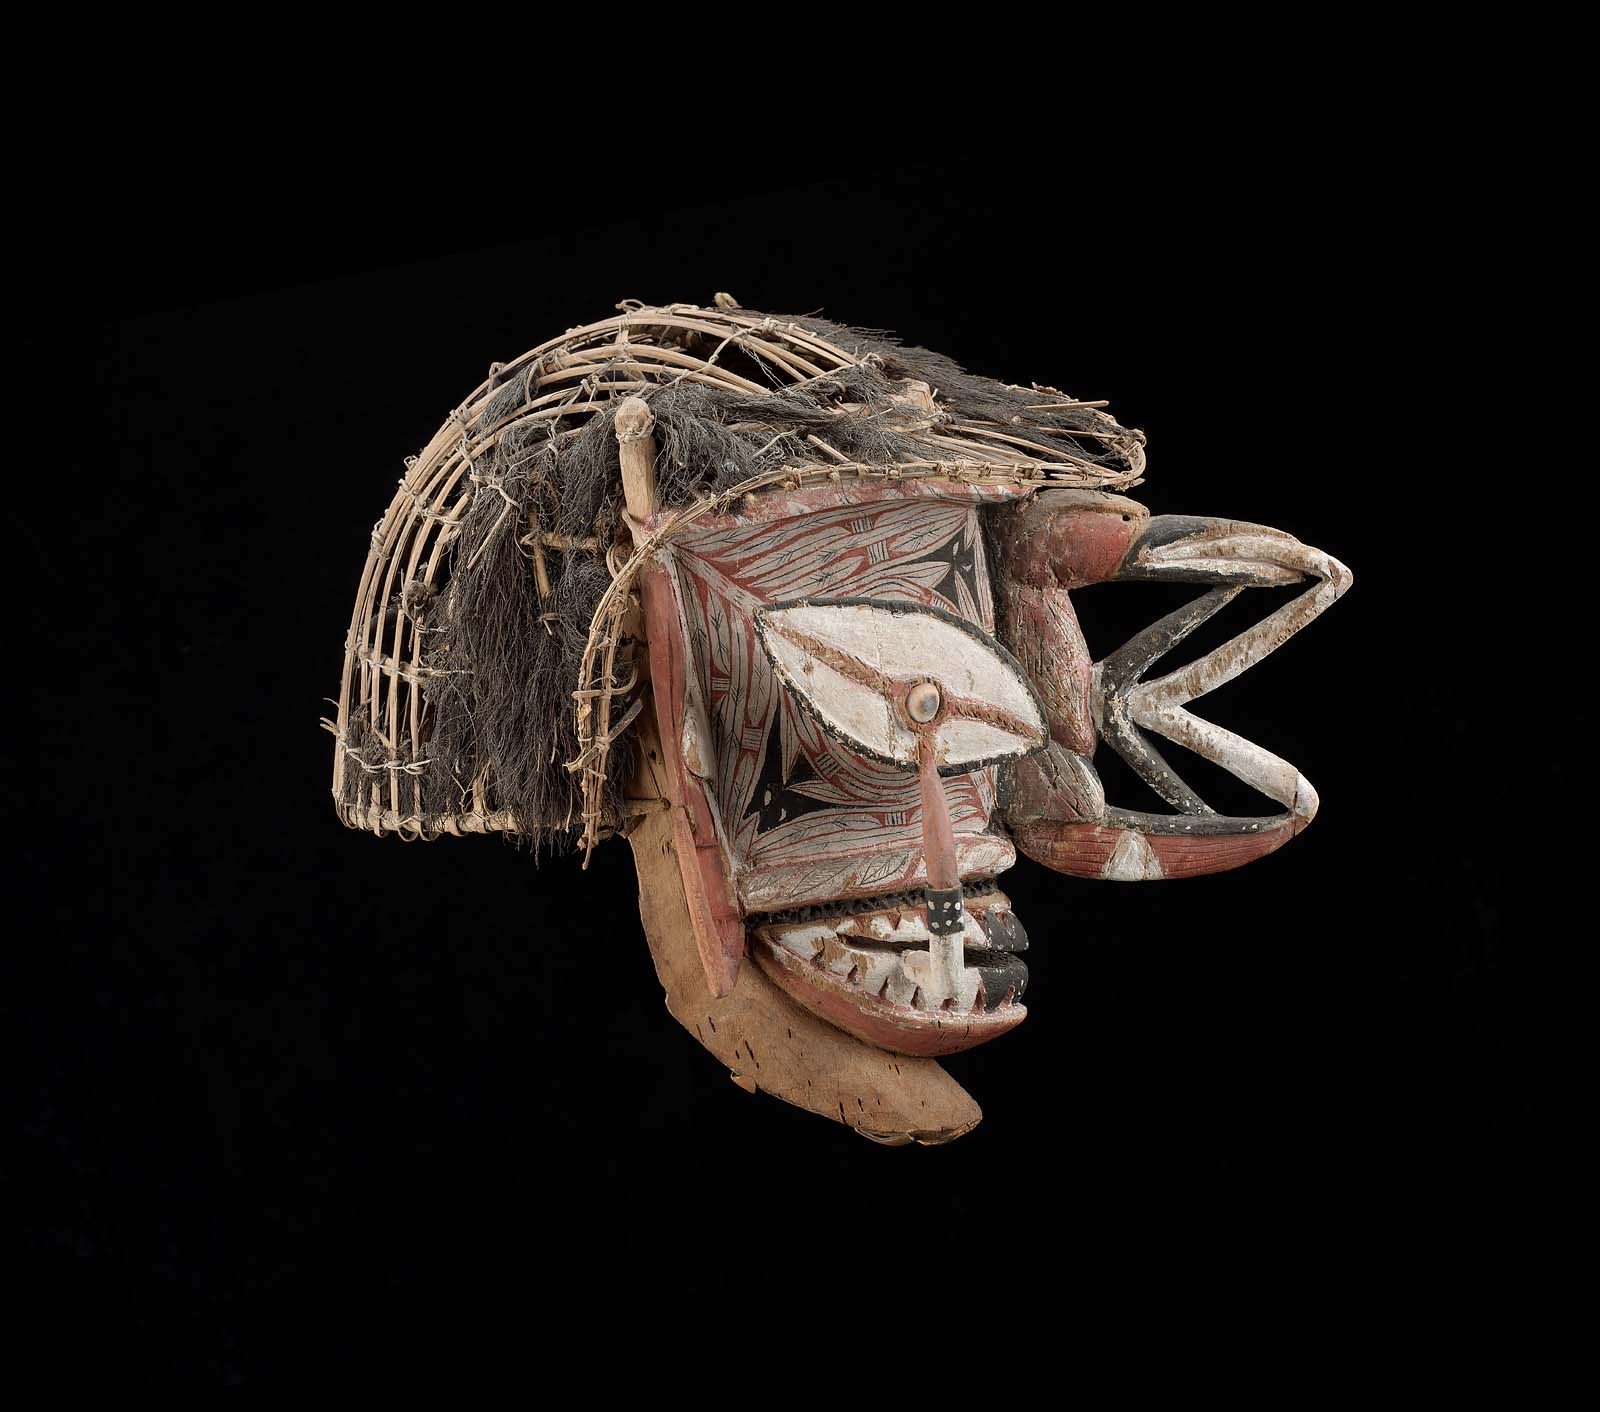 Object Type: Mask Indigenous Name: Kepong or Ges Culture/Location: New Ireland Date: Late 19th century Materials: wood, cane, fiber, pigments Dimensions: 36 cm Institution and accession number: Museum of Fine Arts Boston, 1991.1072